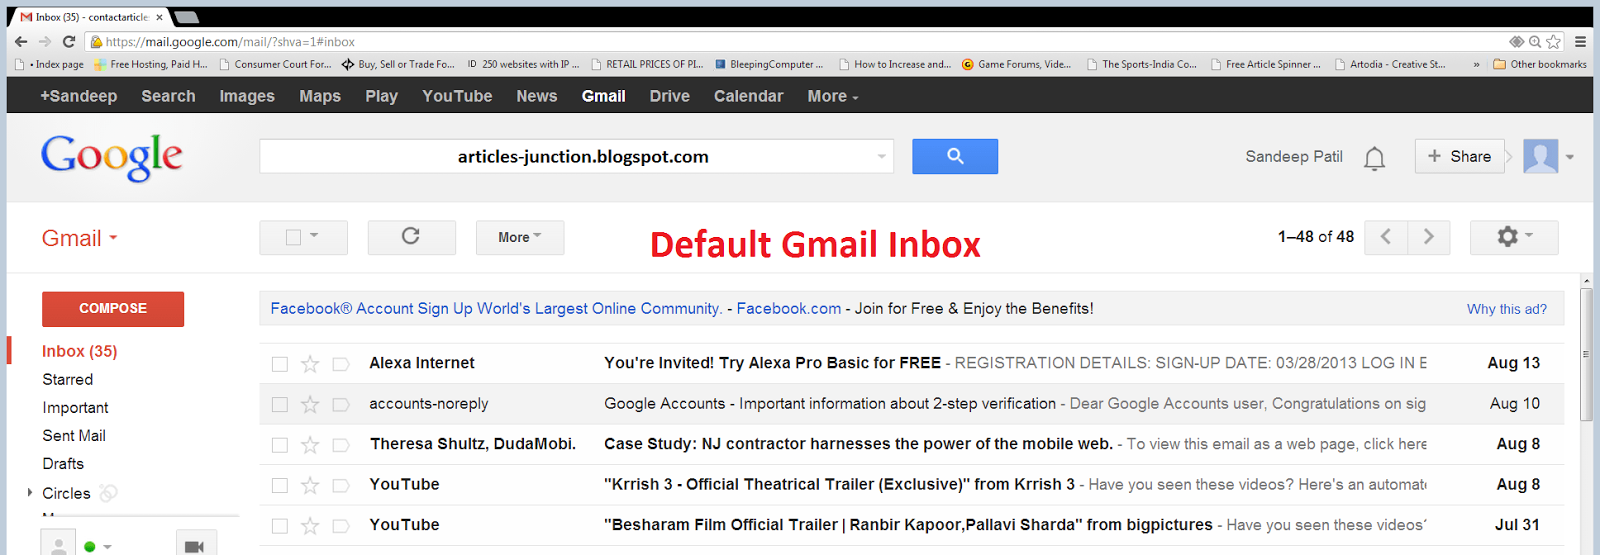 Default interface of Gmail